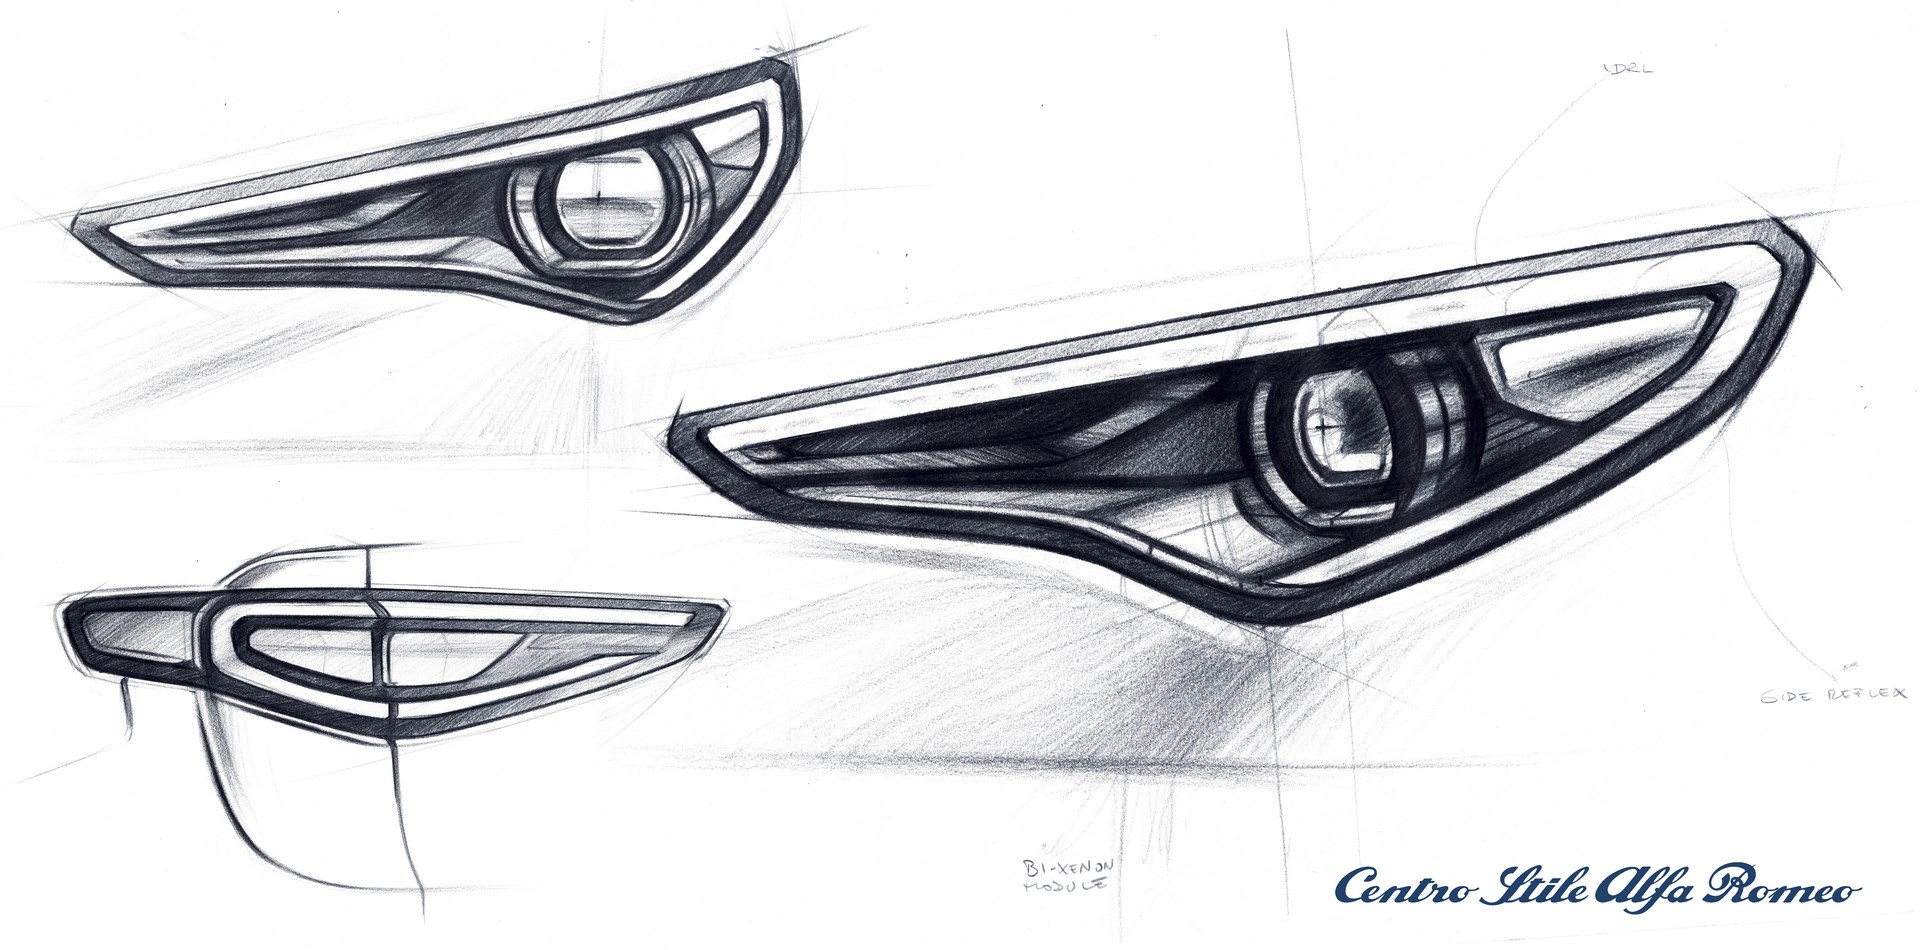 170222_Alfa-Romeo_Stelvio-Design-Sketches_09